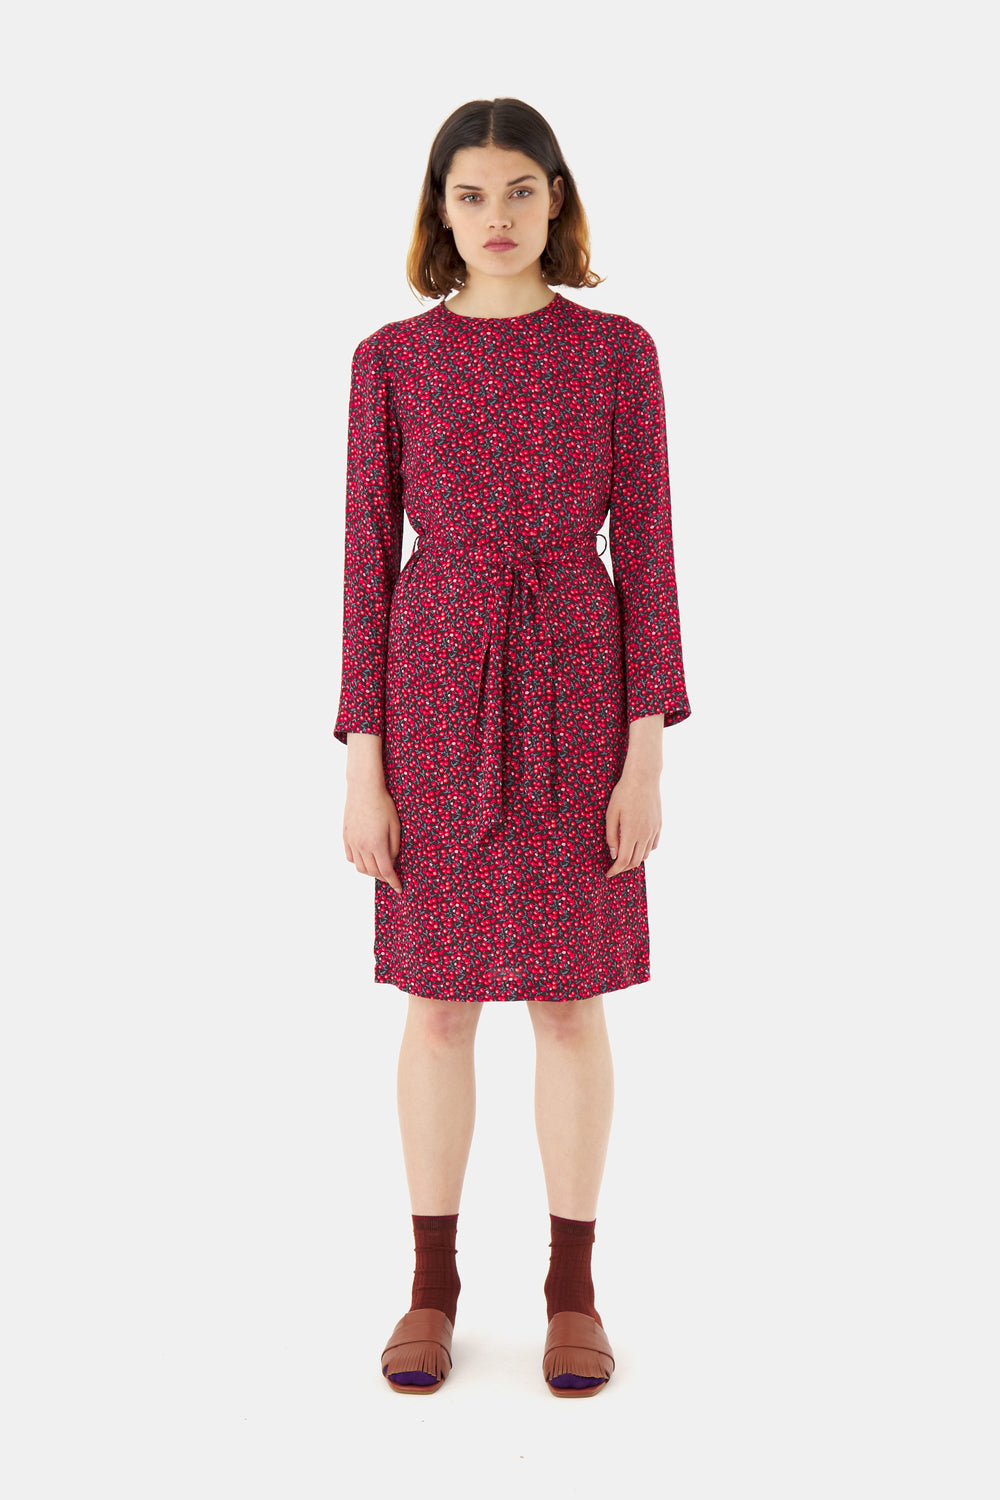 Winterberry dress